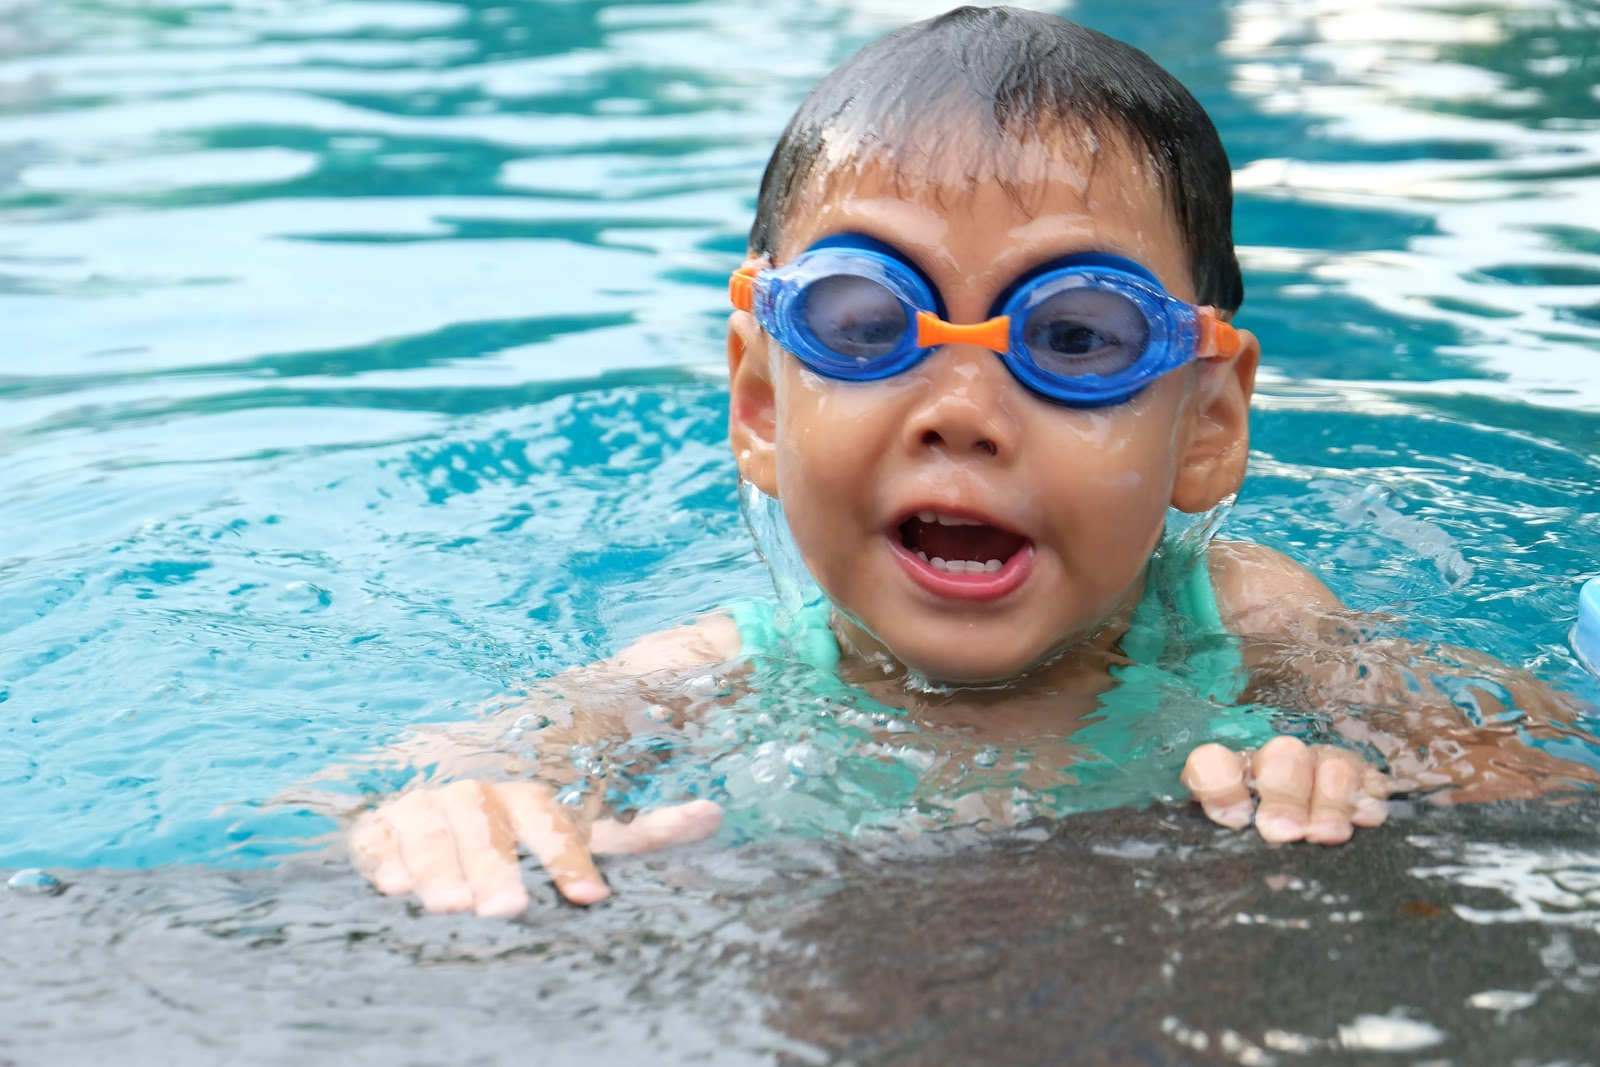 a child wearing swimming goggles, popping their head out of some pool water